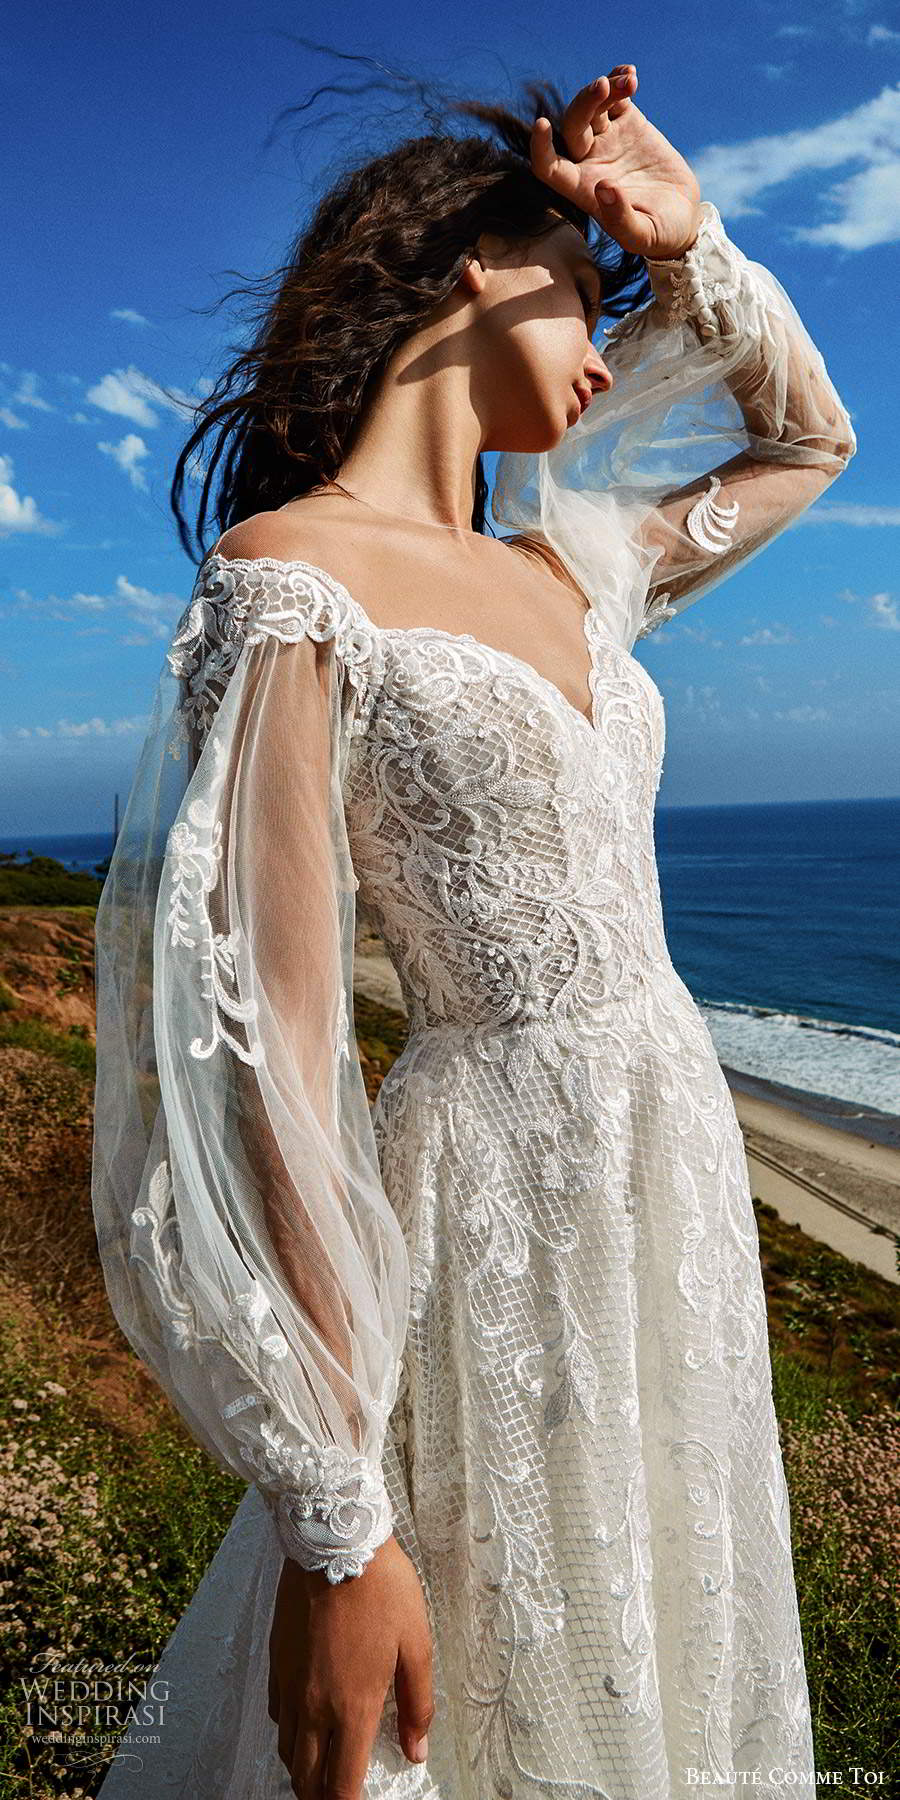 beaute comme toi f2020 bridal illusion long sleeves off shoulder sweetheart neckline fully embellished lace a line ball gown wedding dress chapel train (1) mv